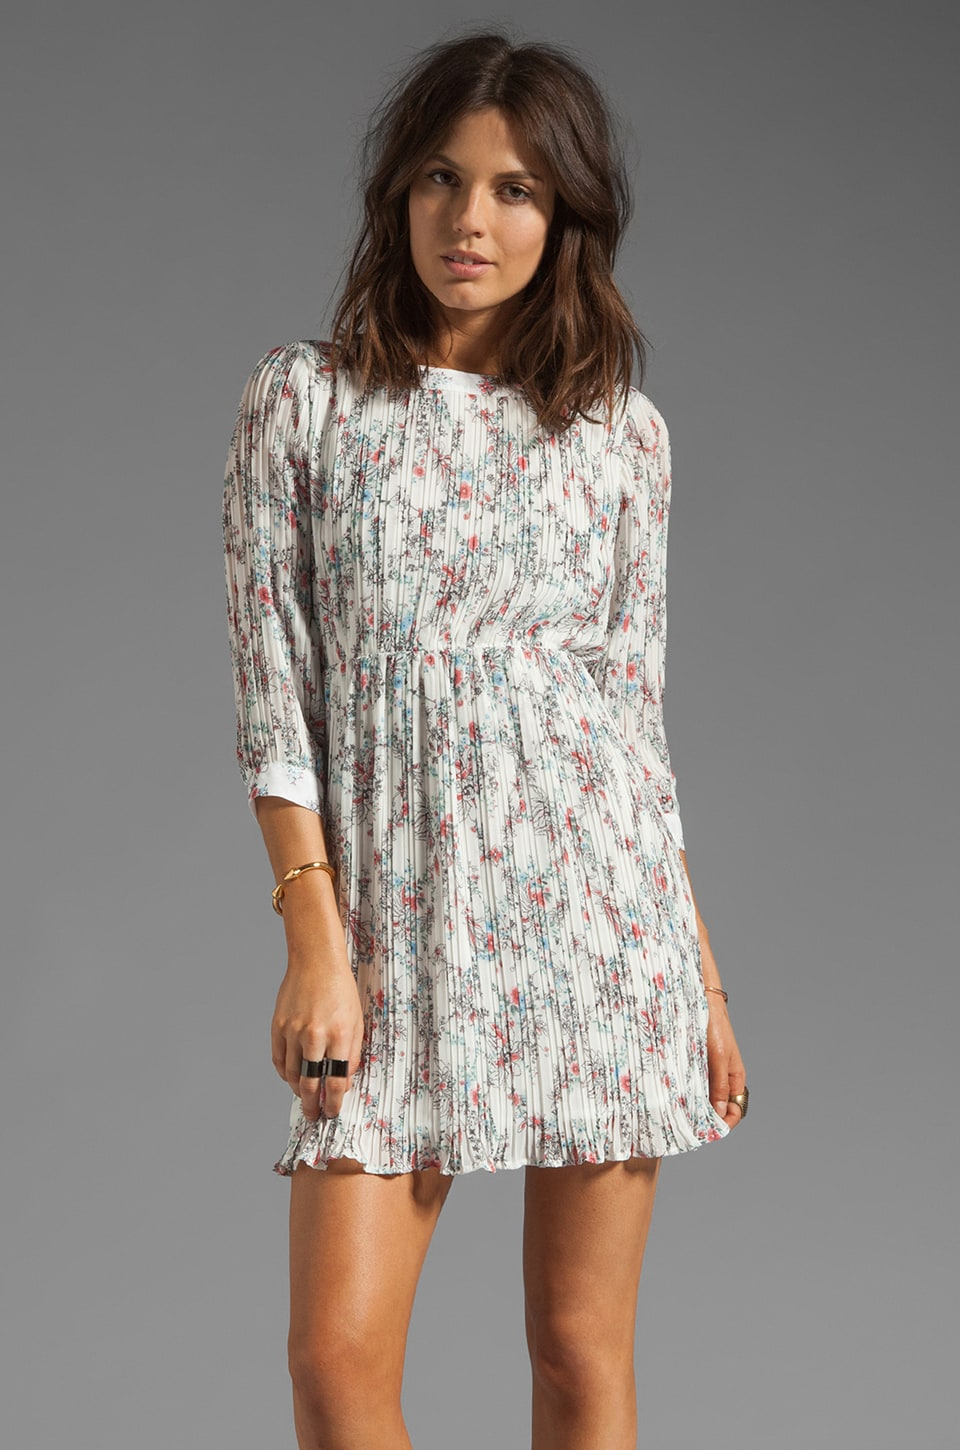 ANINE BING Floral Print Dress in White/Floral